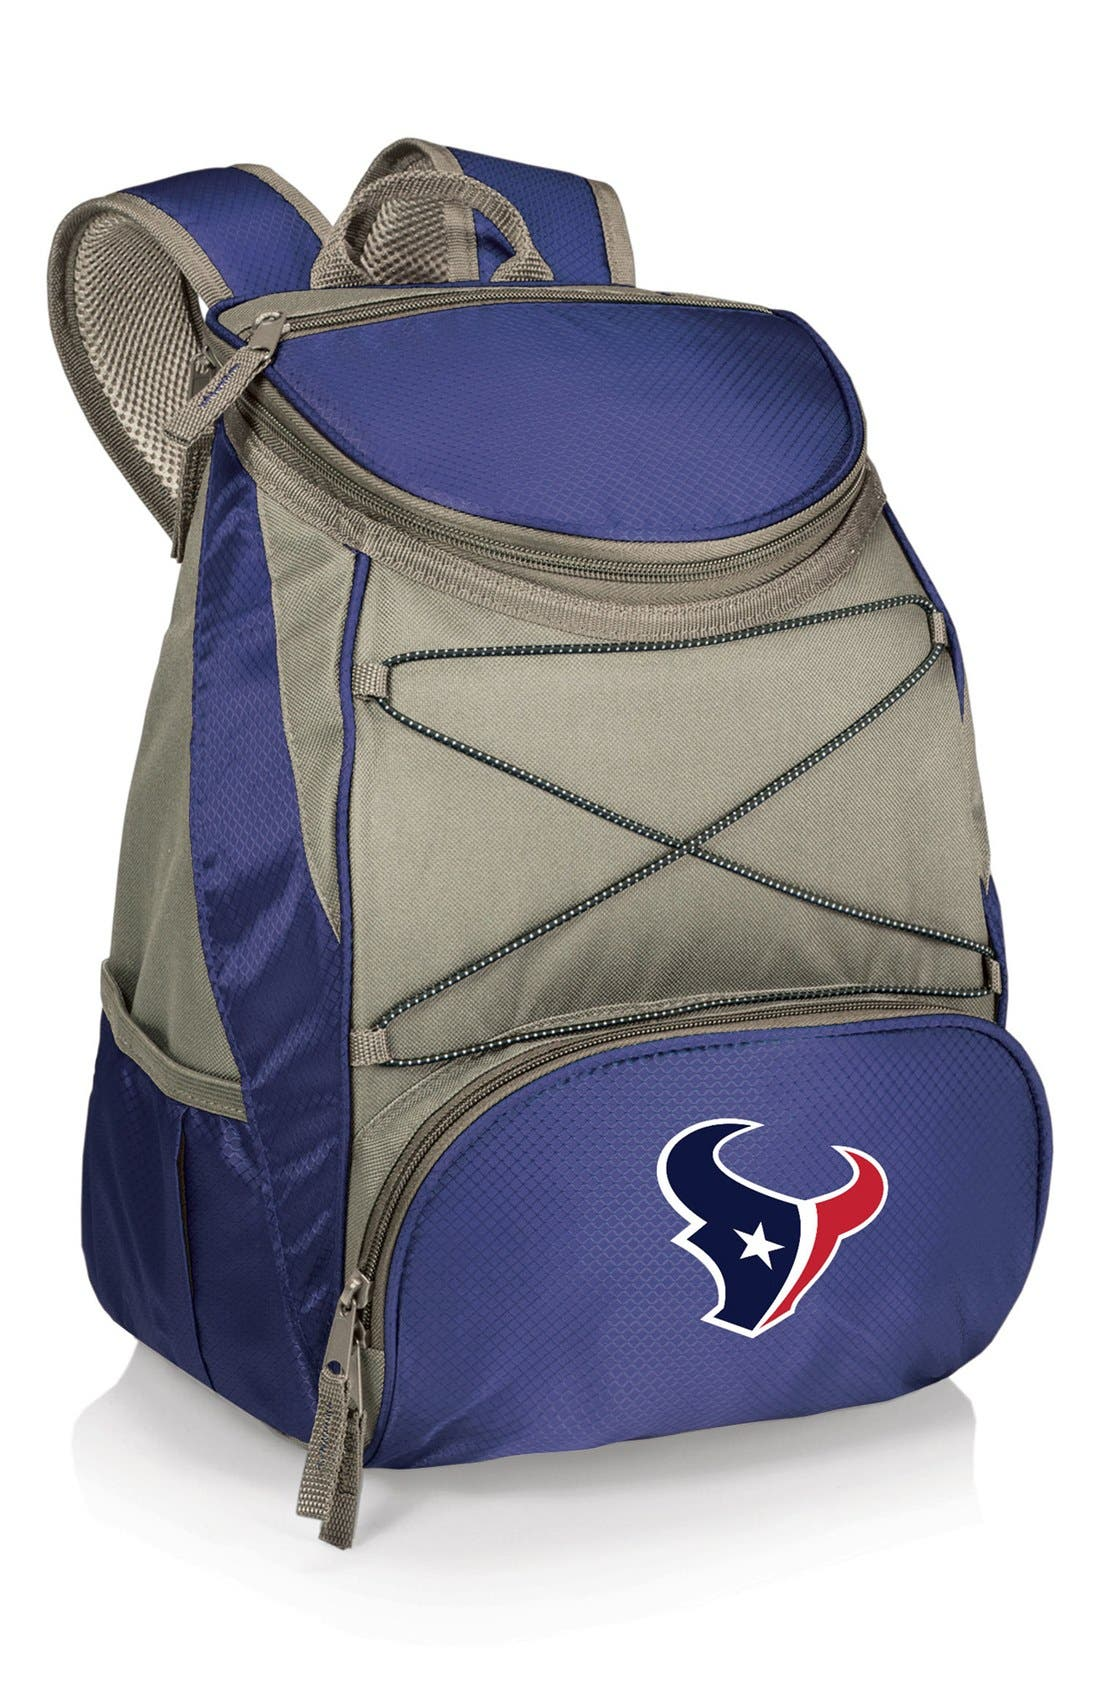 'PTX' Water Resistant Backpack Cooler,                         Main,                         color, Houston Texans - Navy